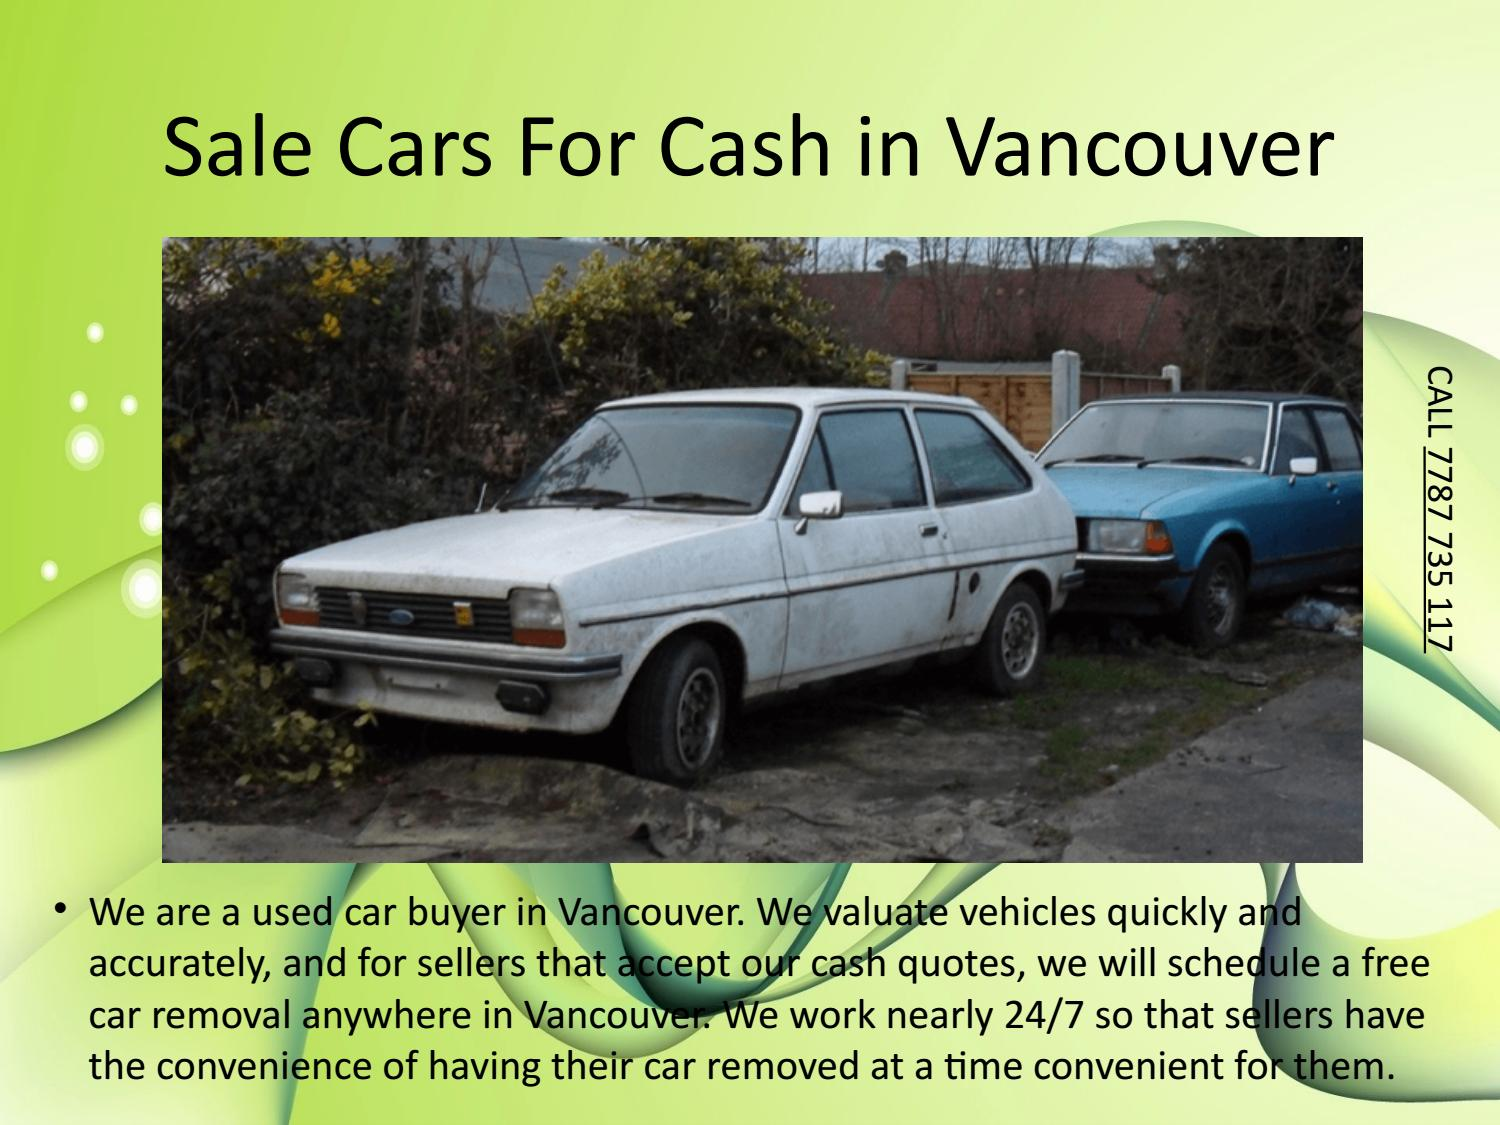 Cash For Cars Vancouver >> Sale Cars For Cash In Vancouver By Mega Cash For Cars